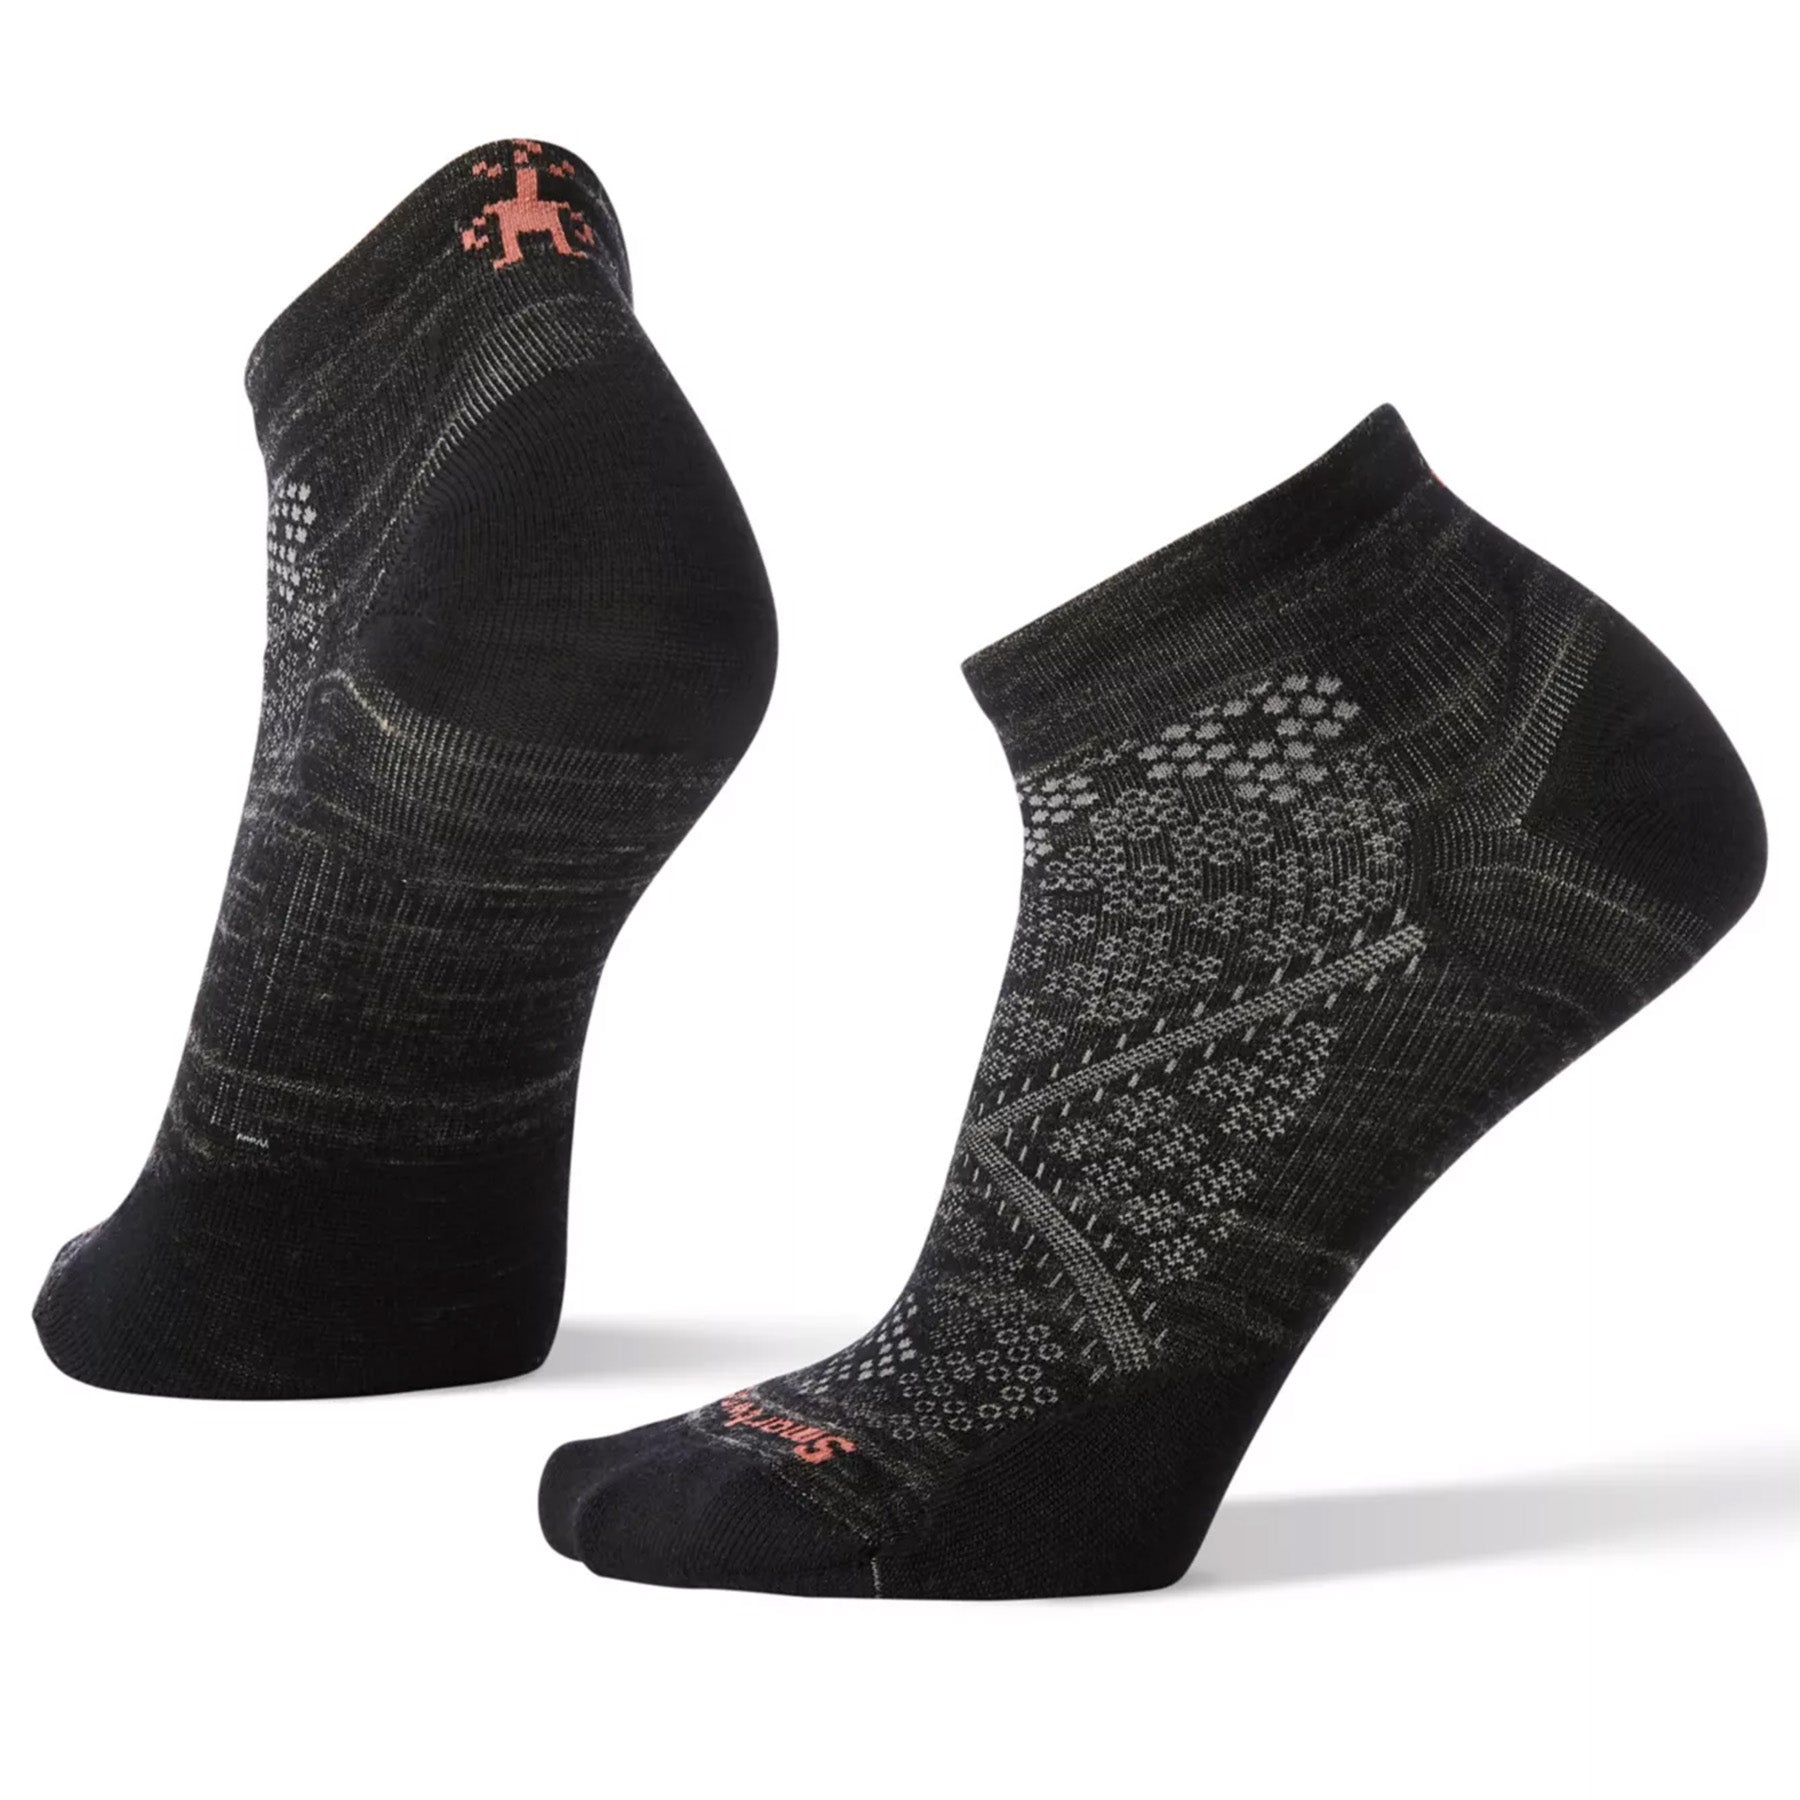 Women's PhD® Run Ultra Light Low Cut Socks in black